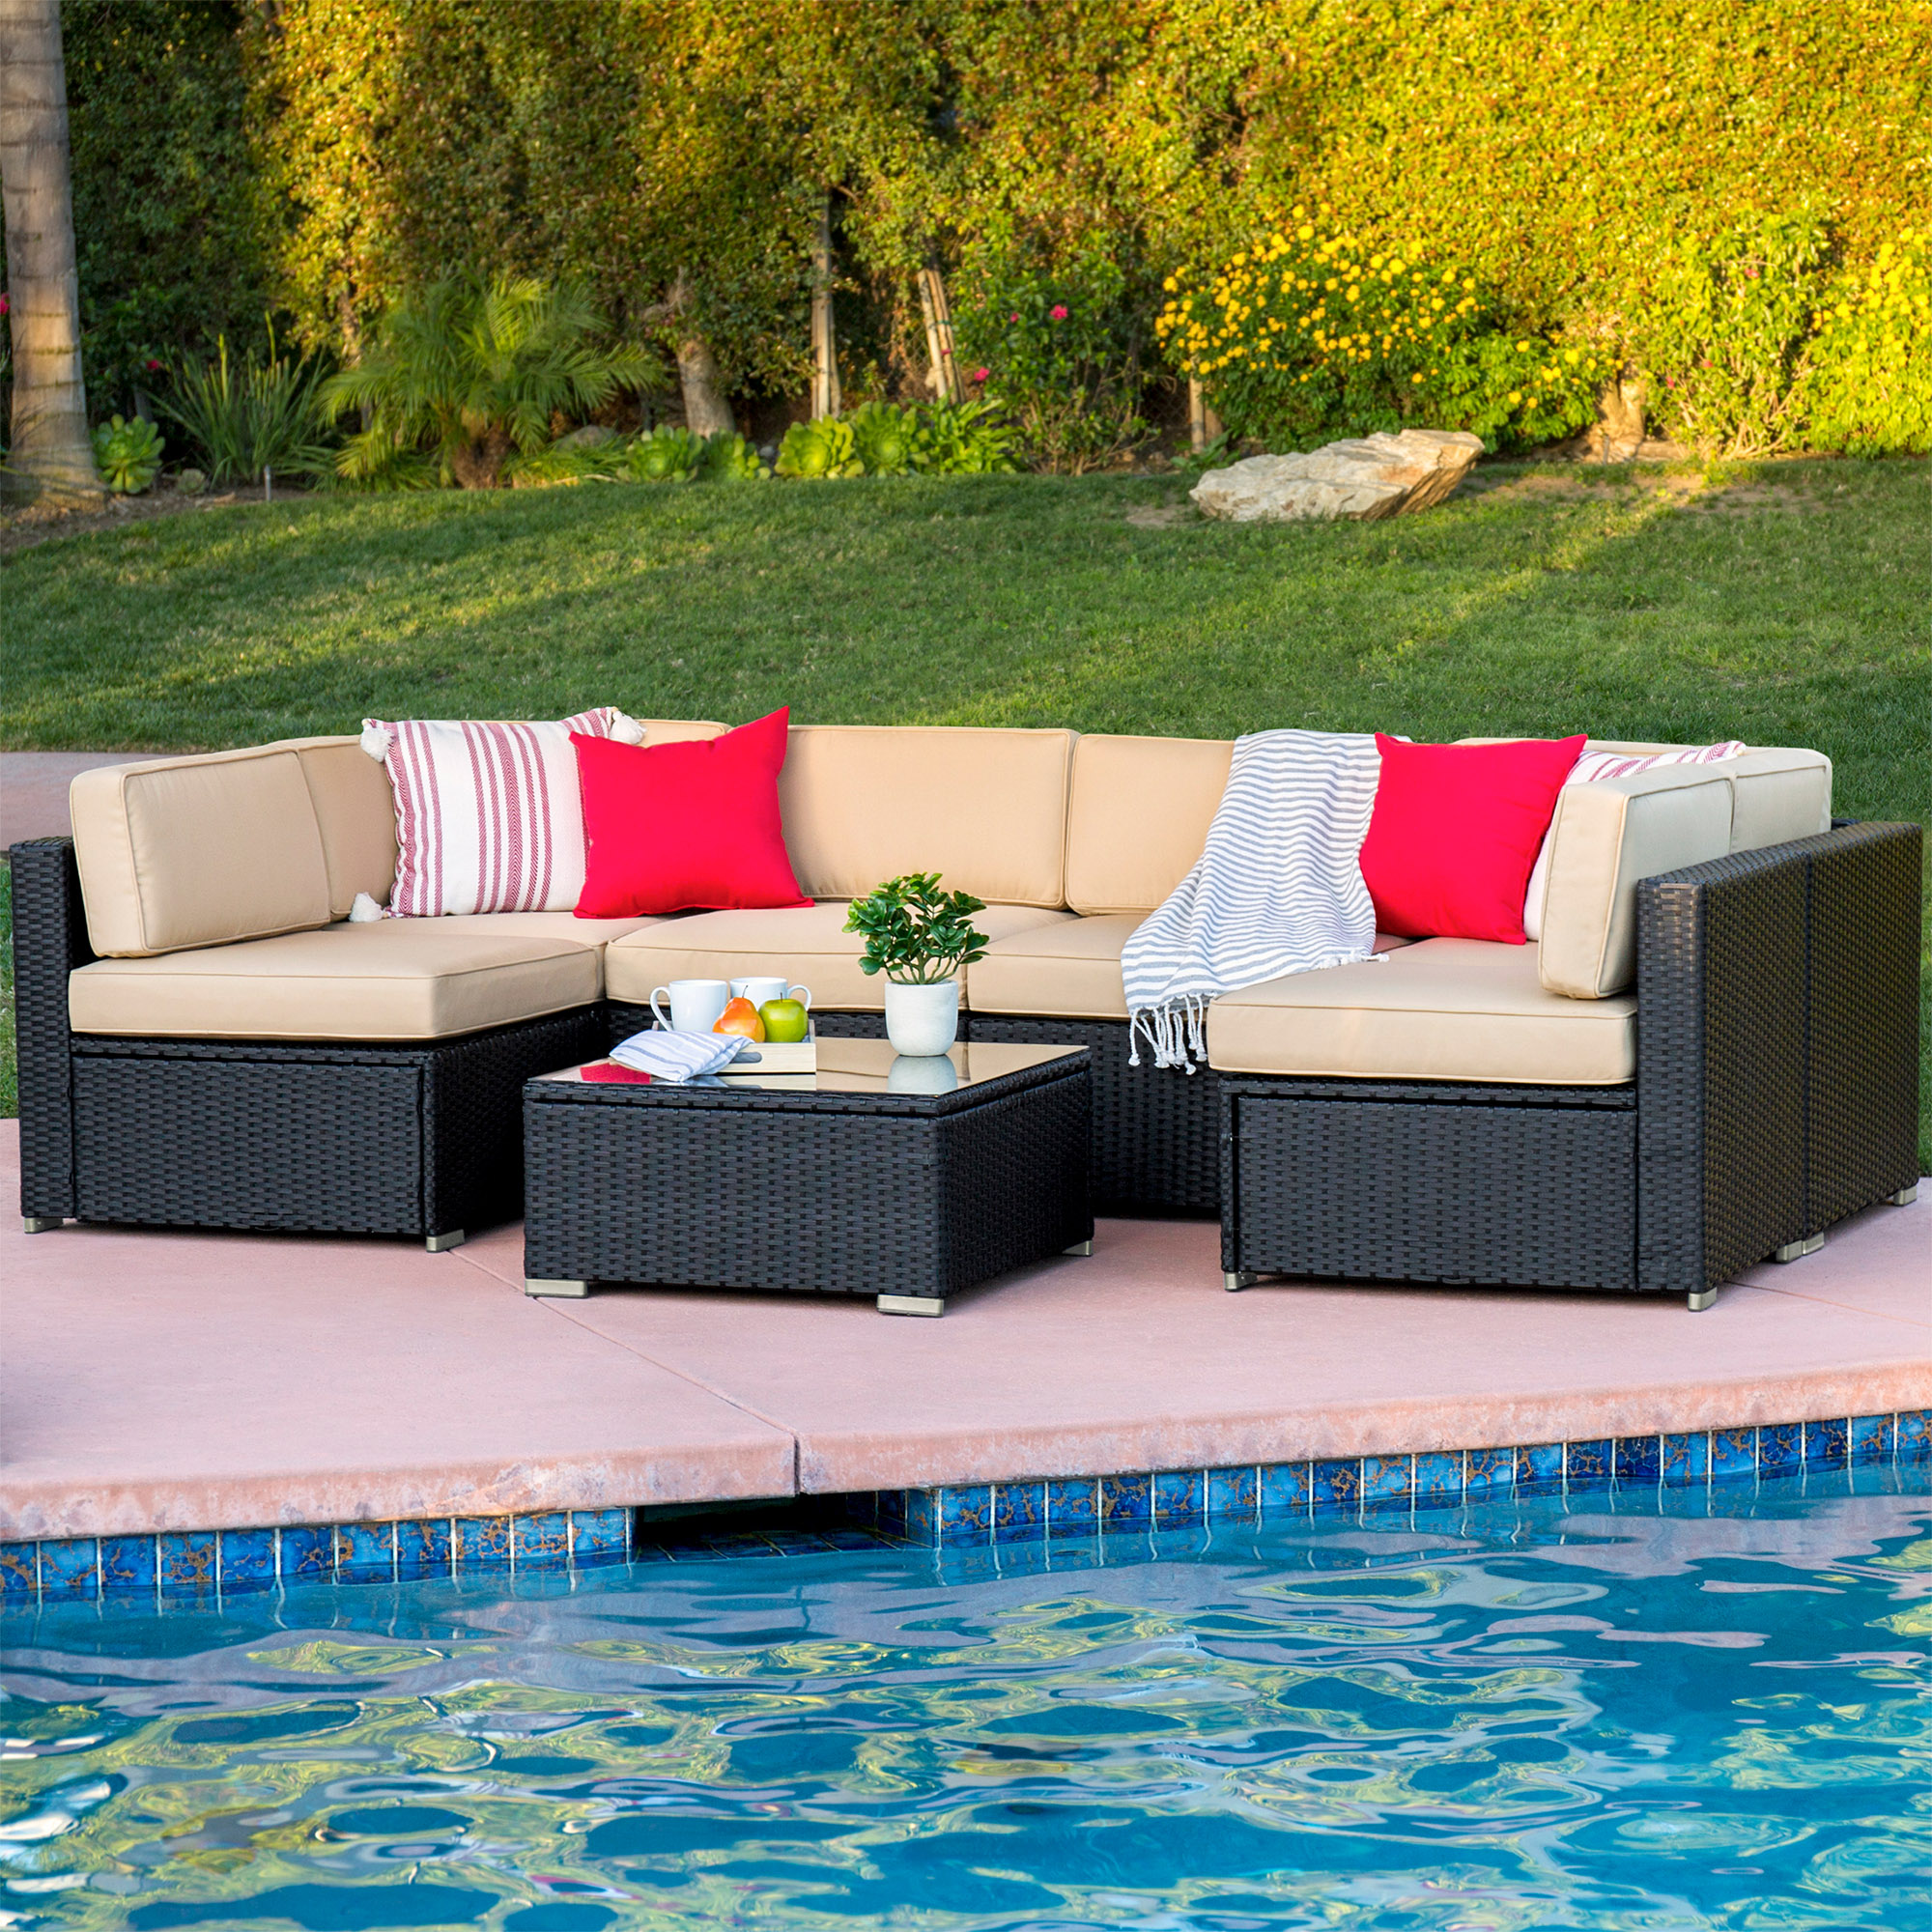 Best Choice Products 7pc Outdoor Patio Garden Wicker Furniture Rattan Sofa Set by Best Choice Products